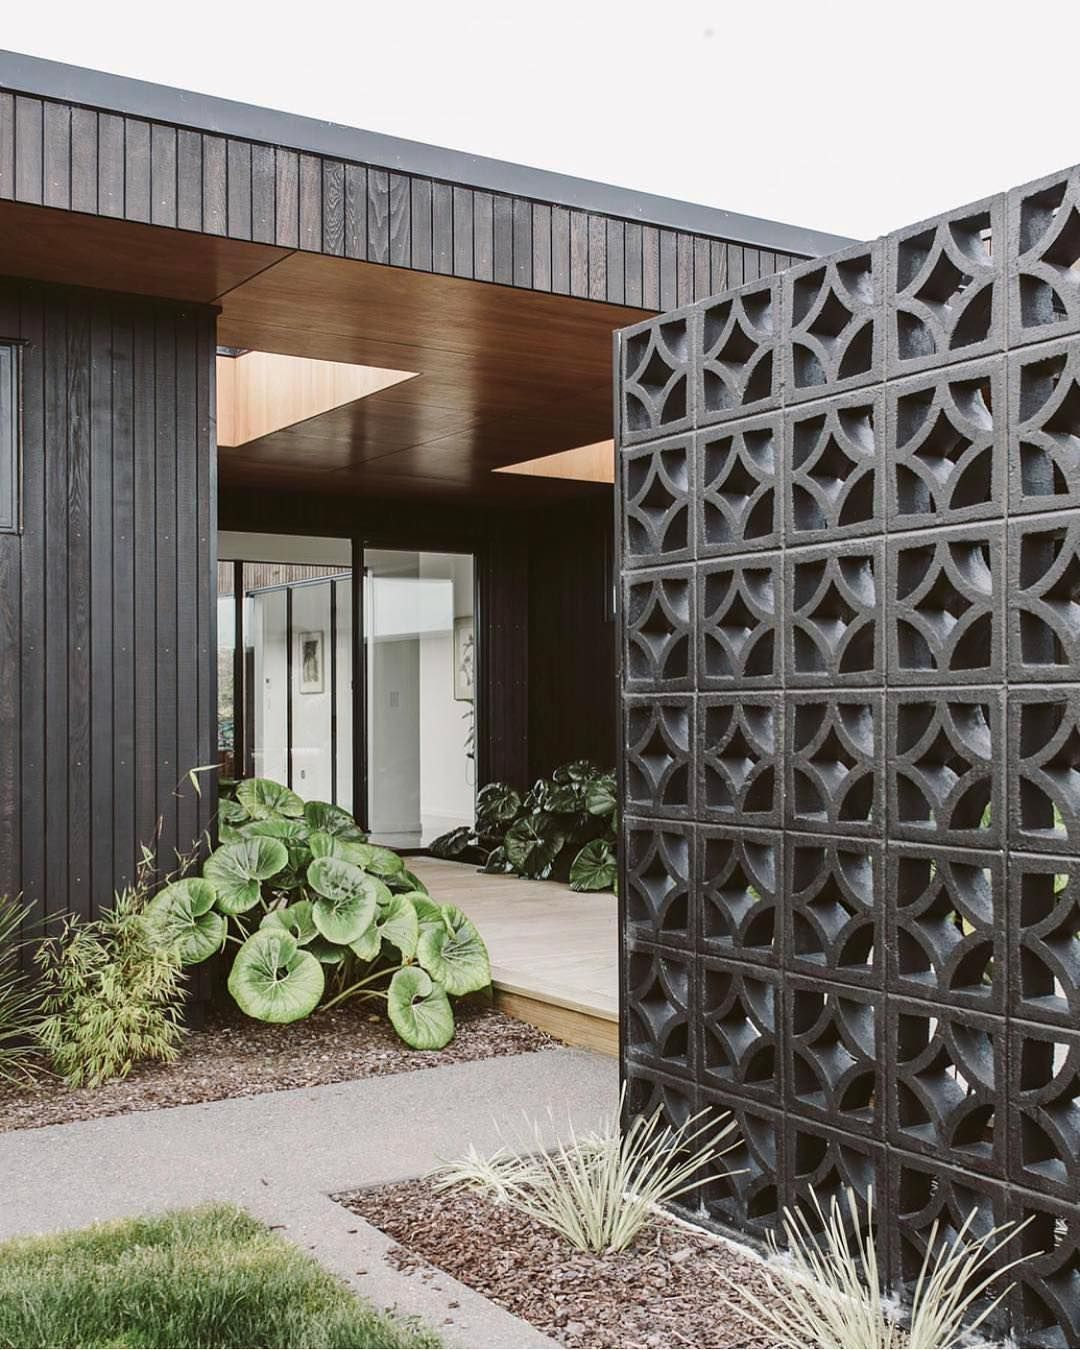 that s a yes black breeze blocks well i never on classy backyard design ideas may be you never think id=26863